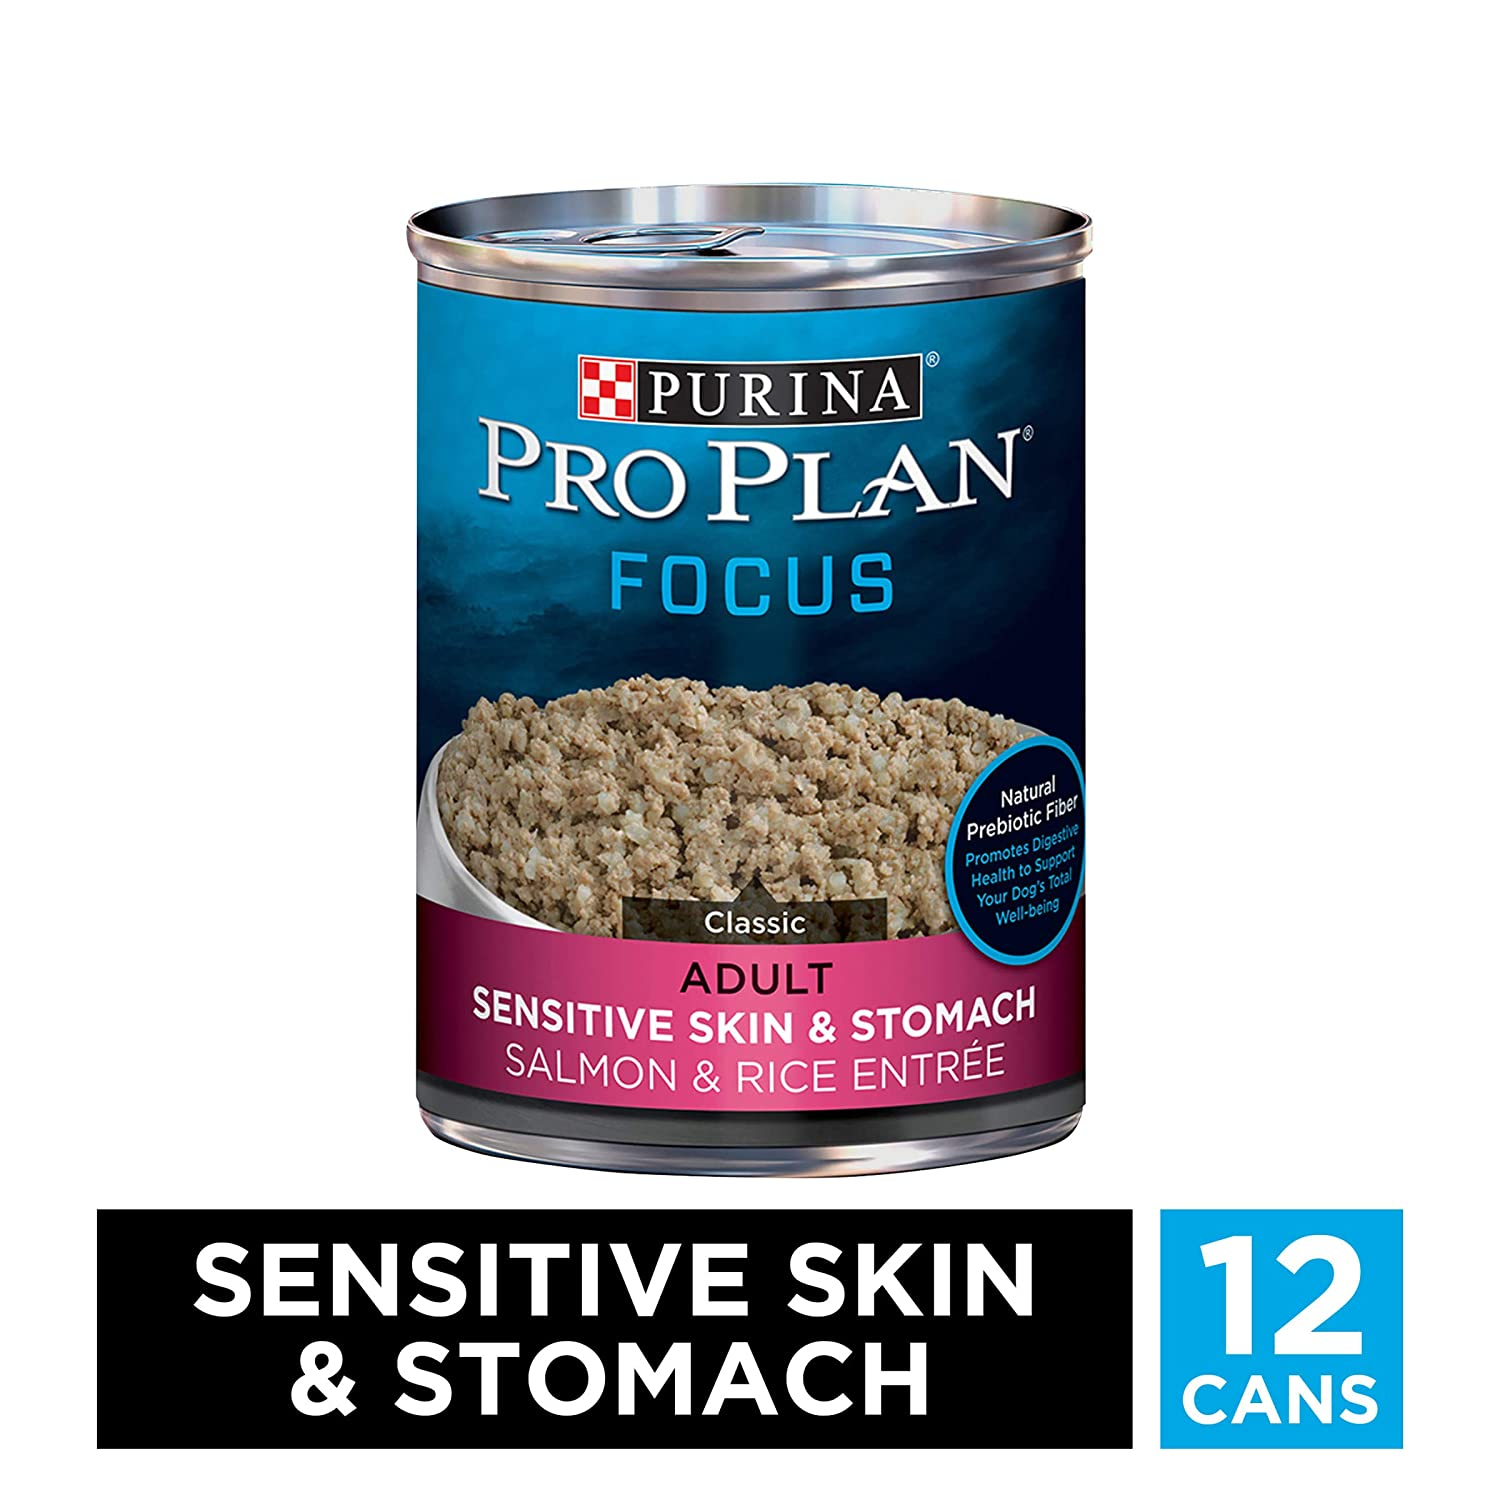 Purina Pro Plan FOCUS Sensitive Skin & Stomach Adult Dry Dog Food & Wet Dog Food